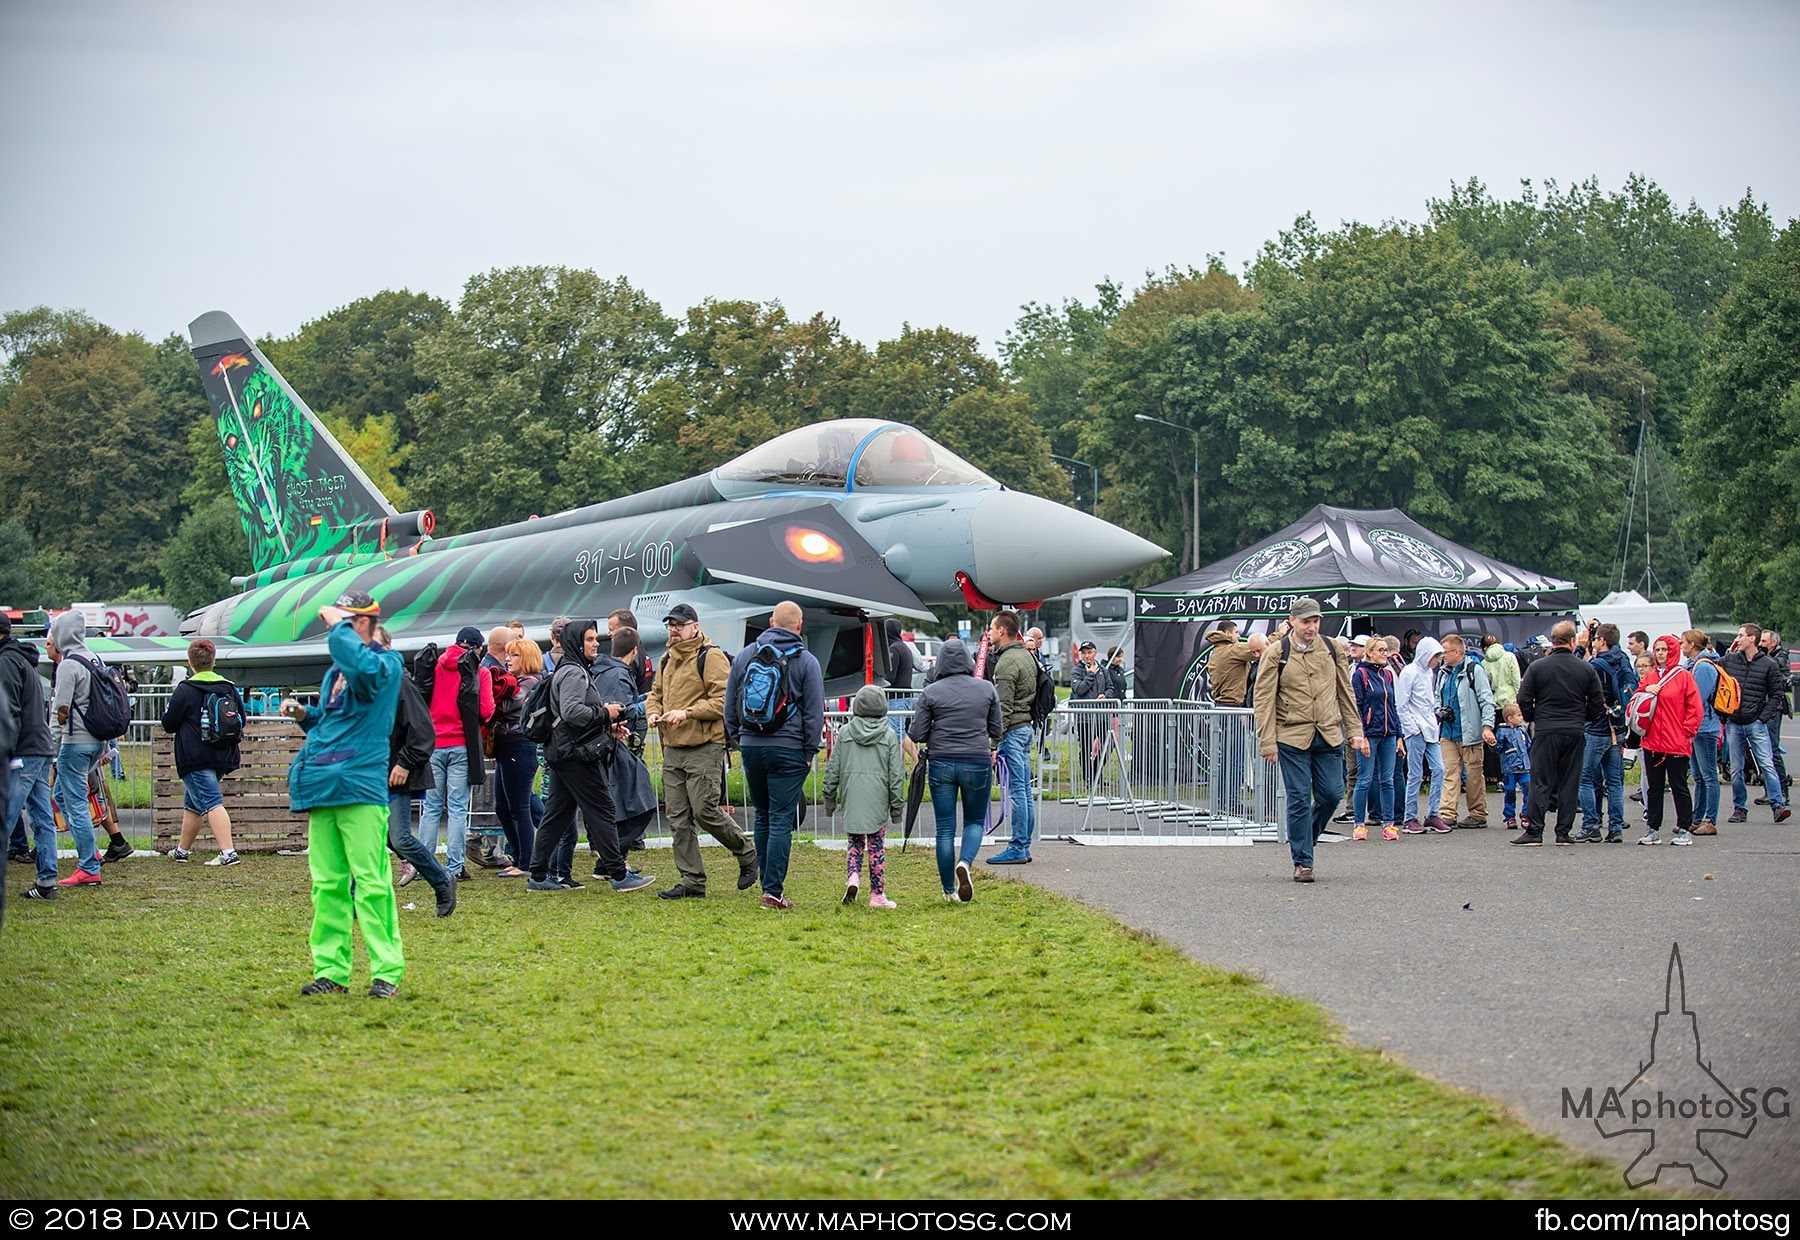 13. Crowds at the Ghost Tiger static display area checking out the aircraft and collectables in the tent